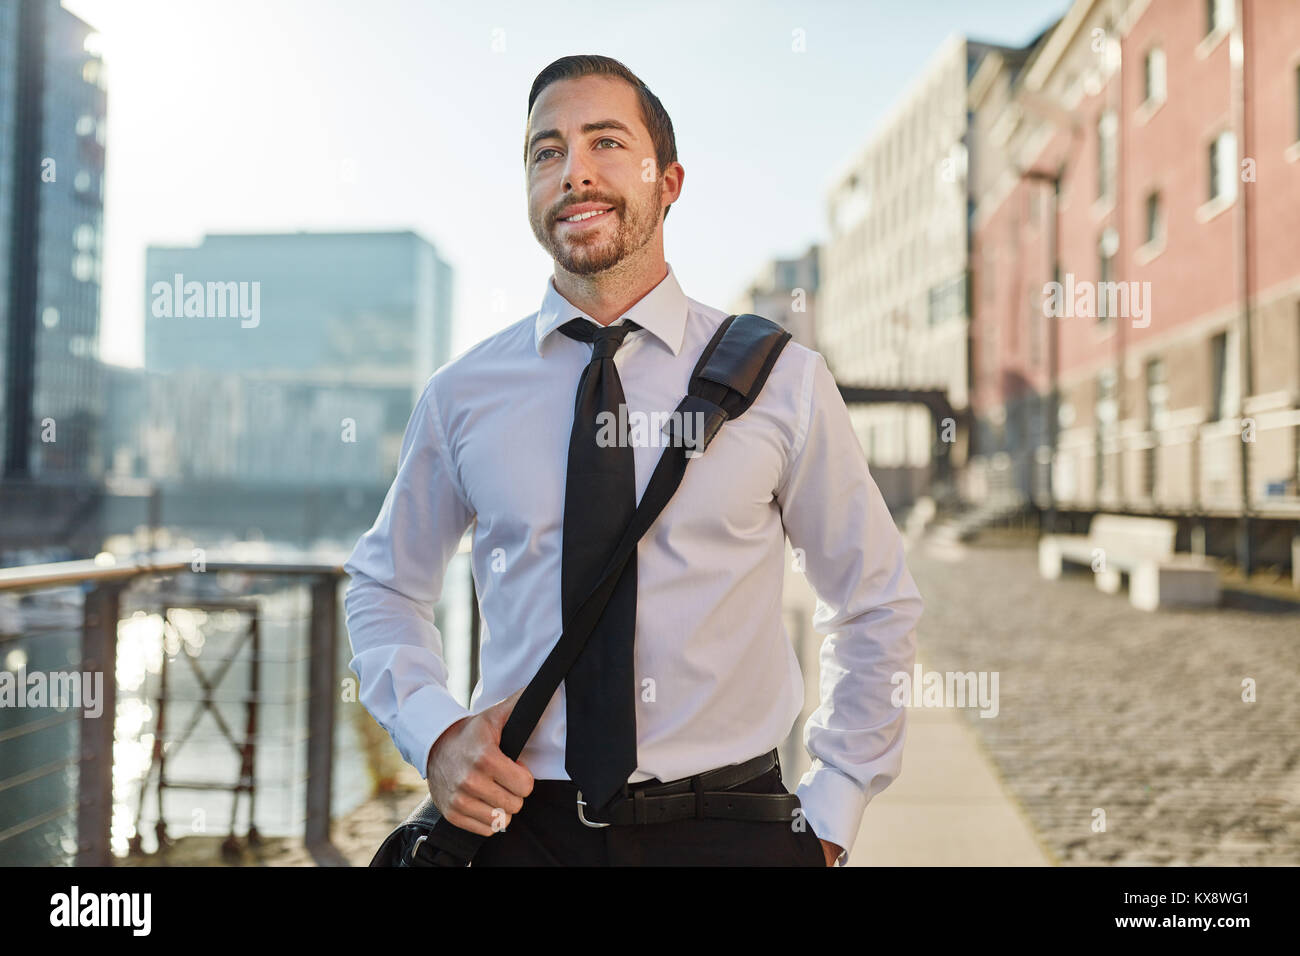 Business man after work going home through the city - Stock Image